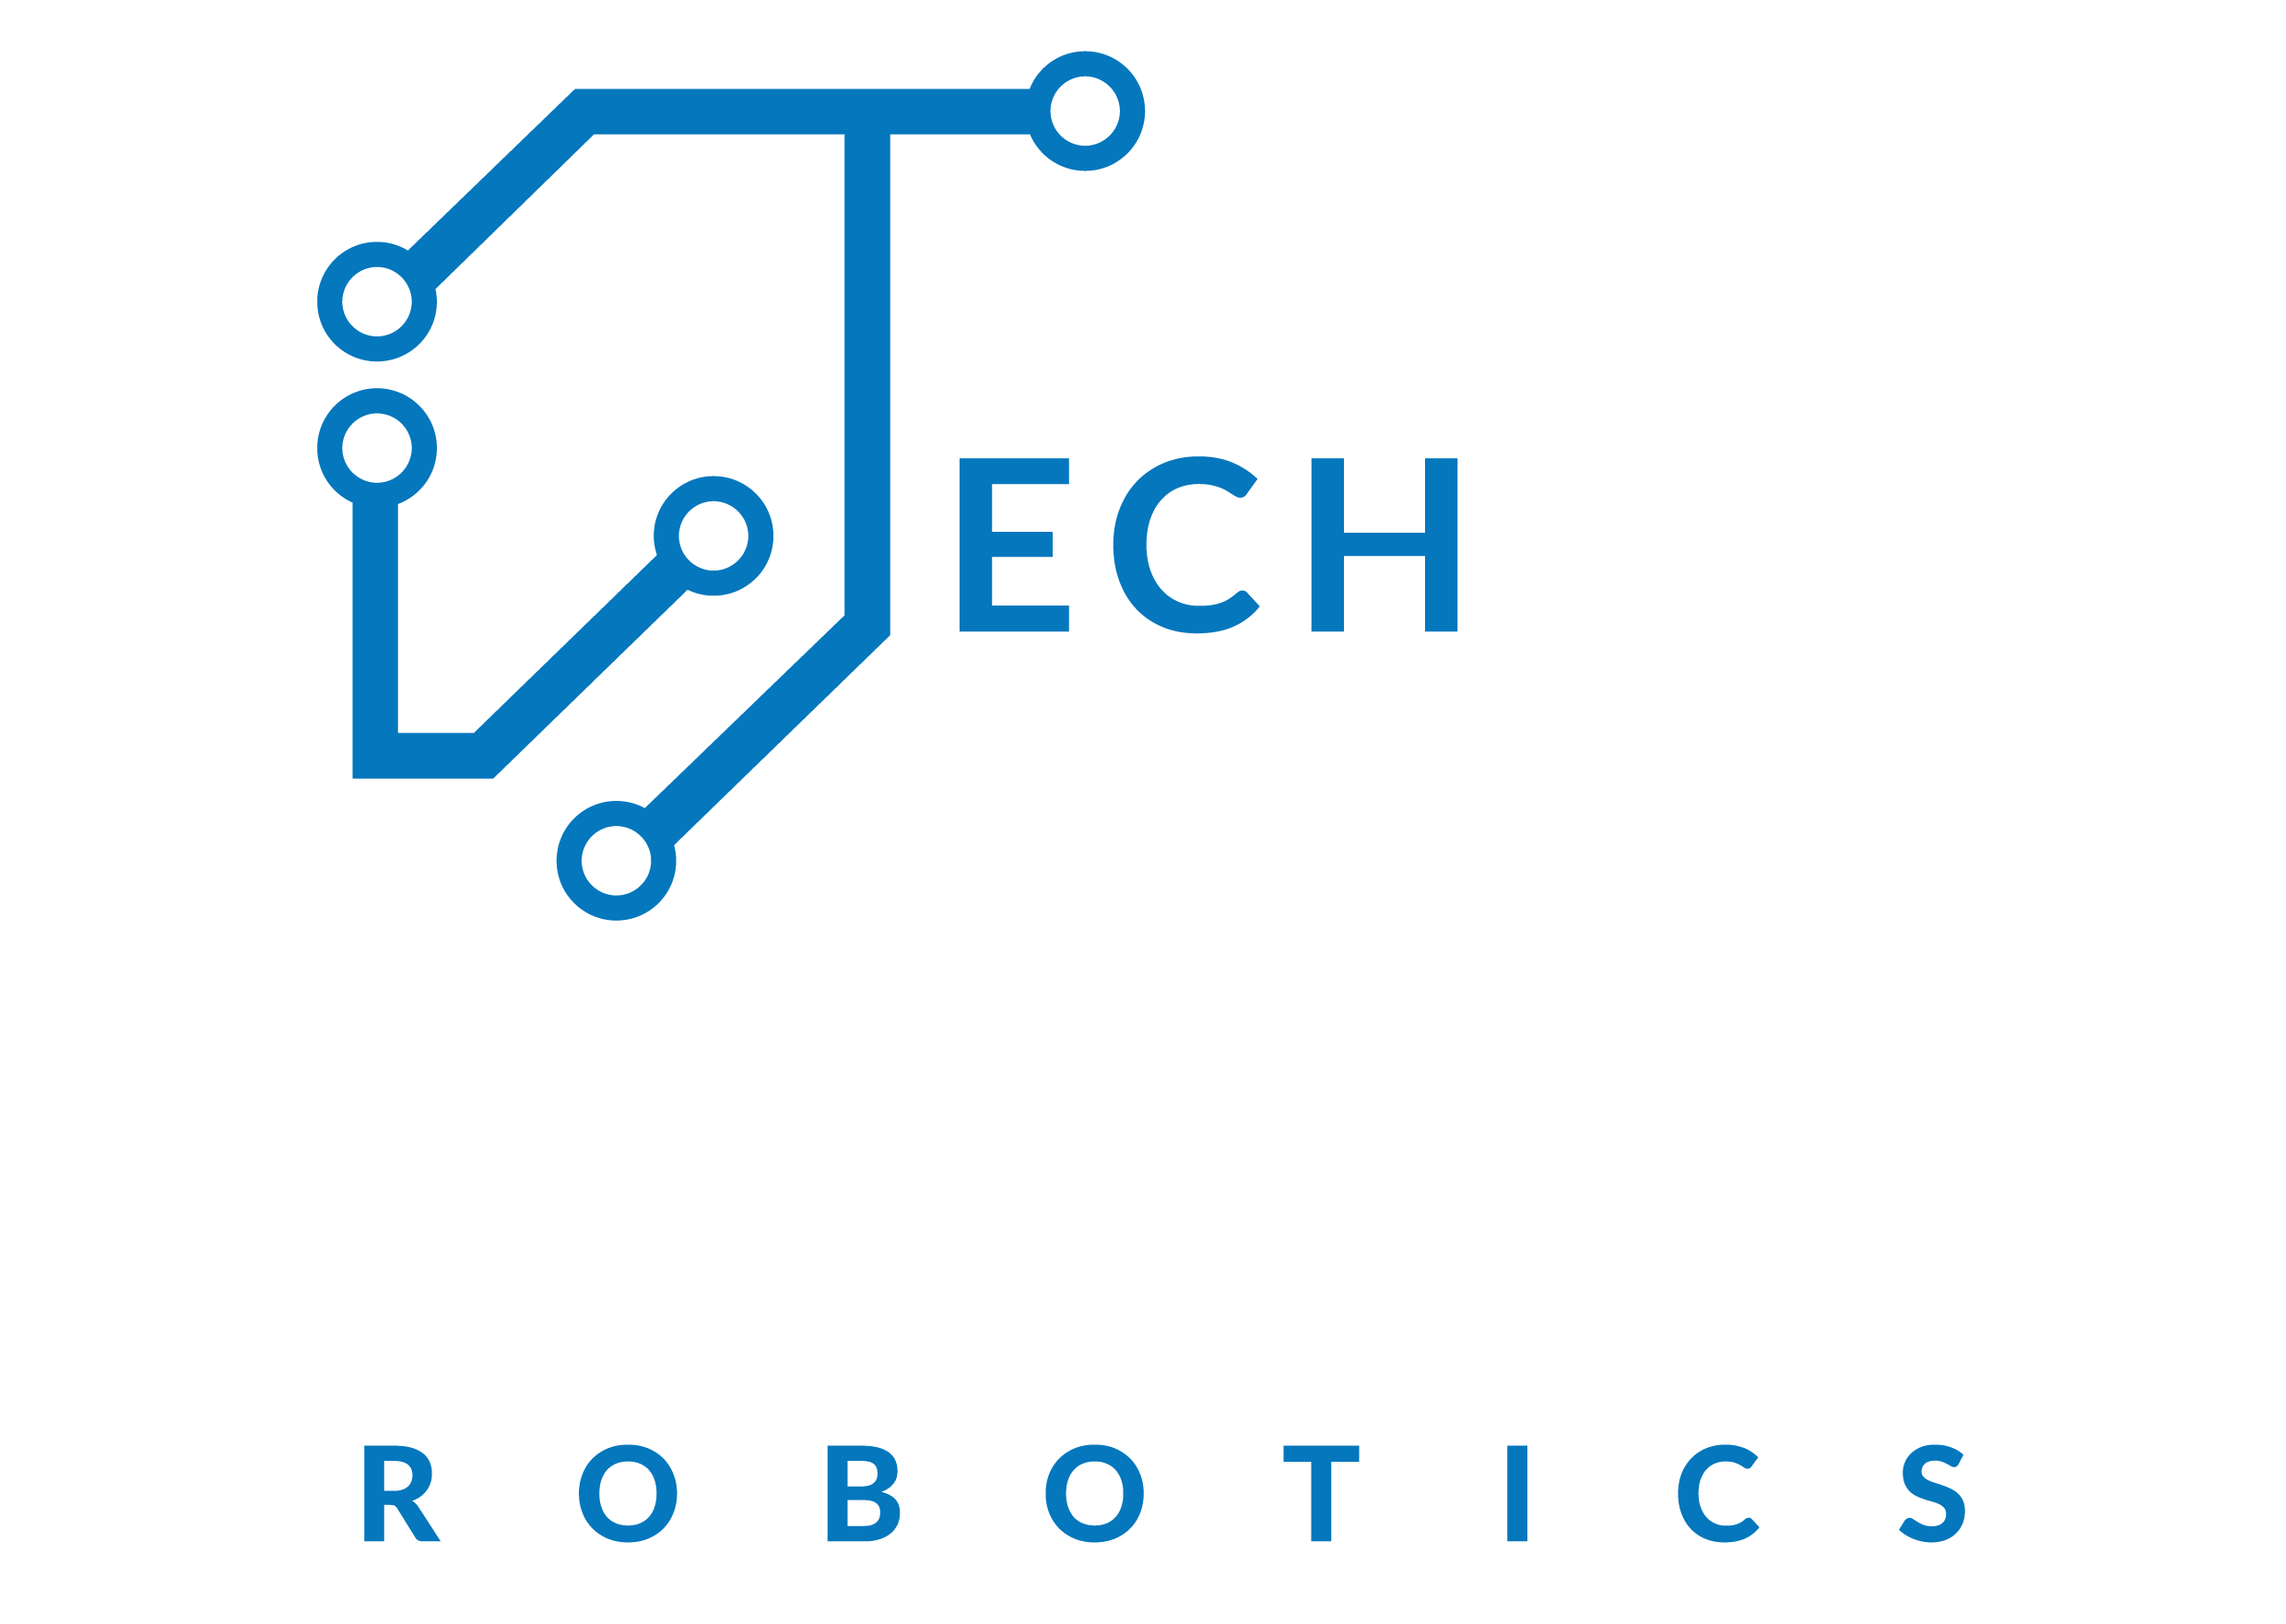 TechKnights - Robotics